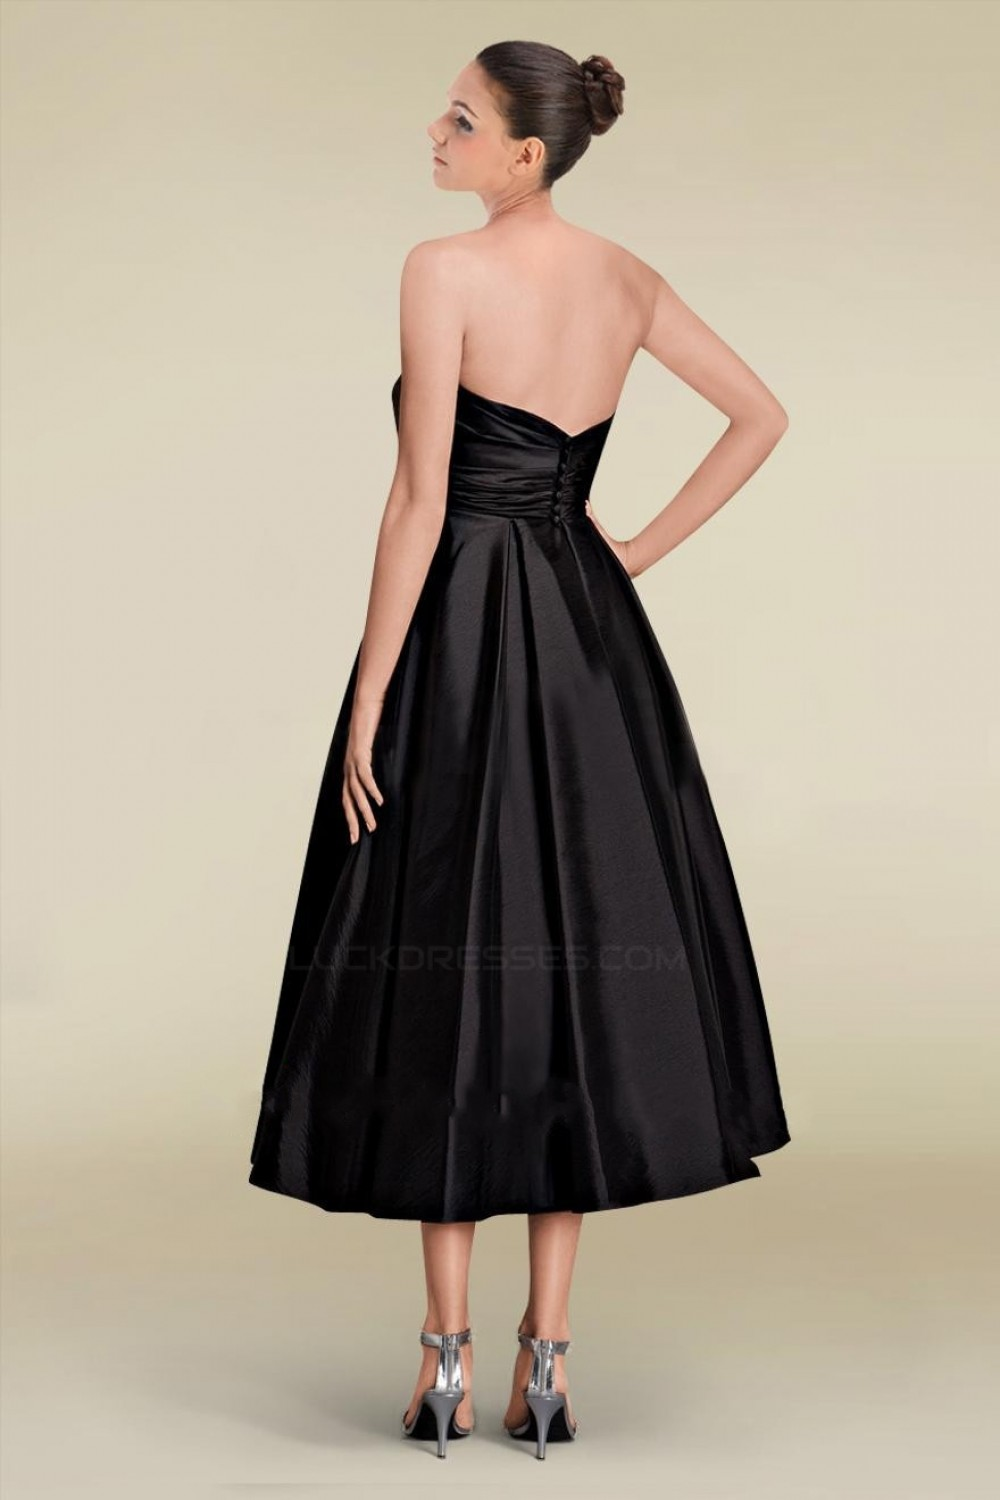 2630b6f258a A-Line Sweetheart Short Black Bridesmaid Dresses Wedding Party Dresses  BD010387